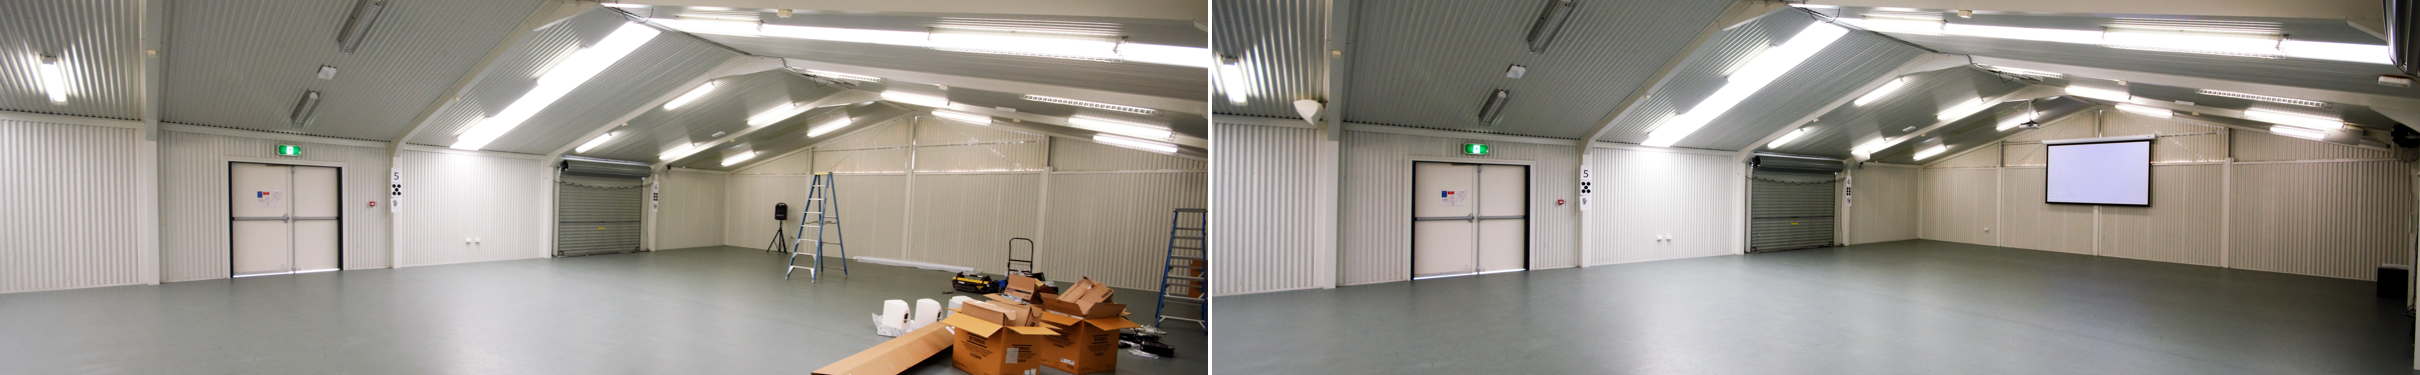 Western Suburbs Special School - Hall AV Before / After